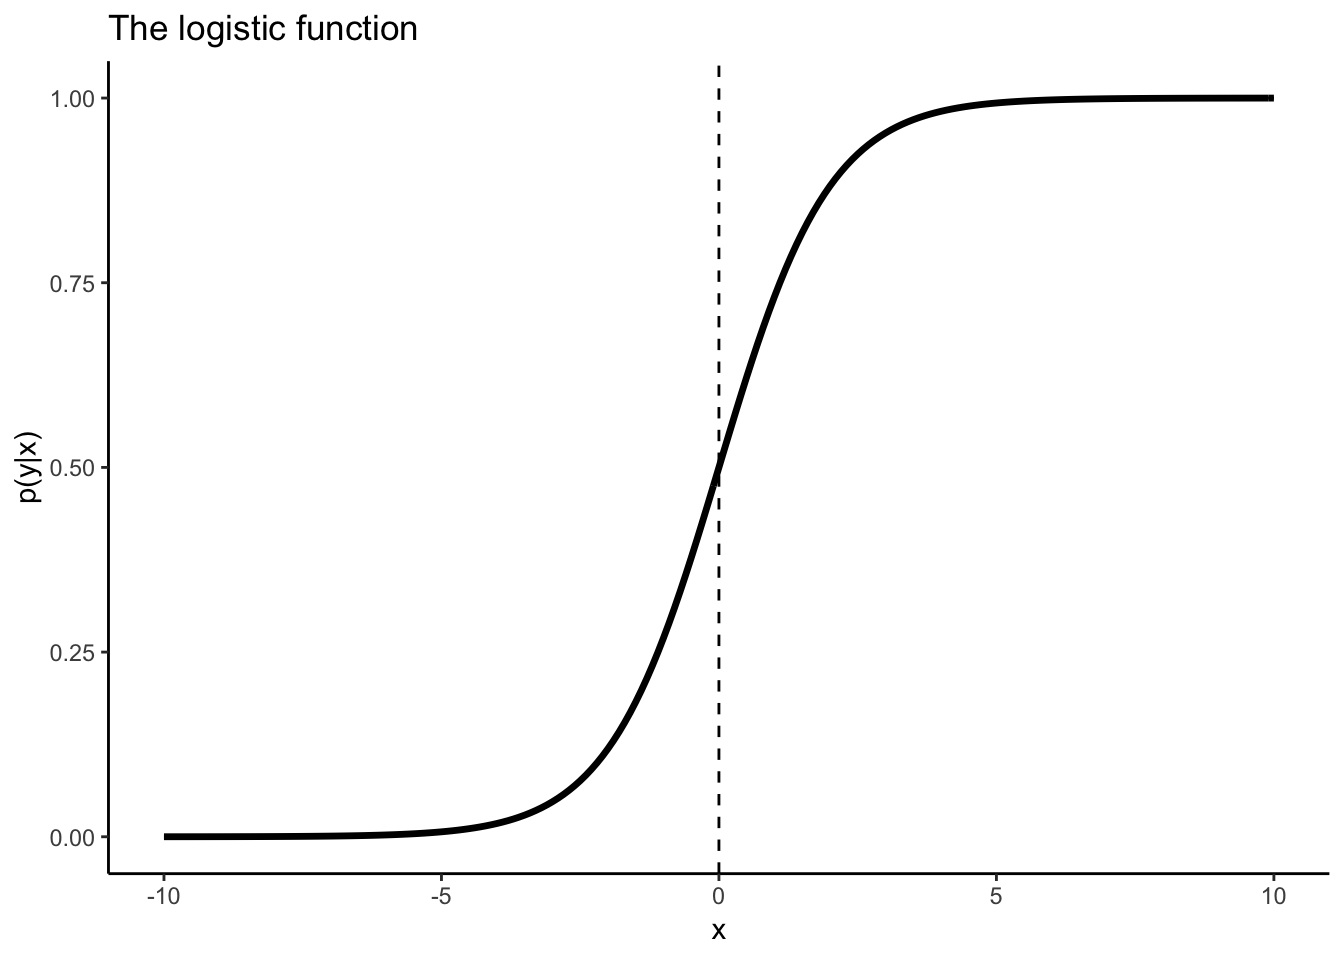 Logistic regression is often described as an s-shaped function that squishes values to 0 or 1